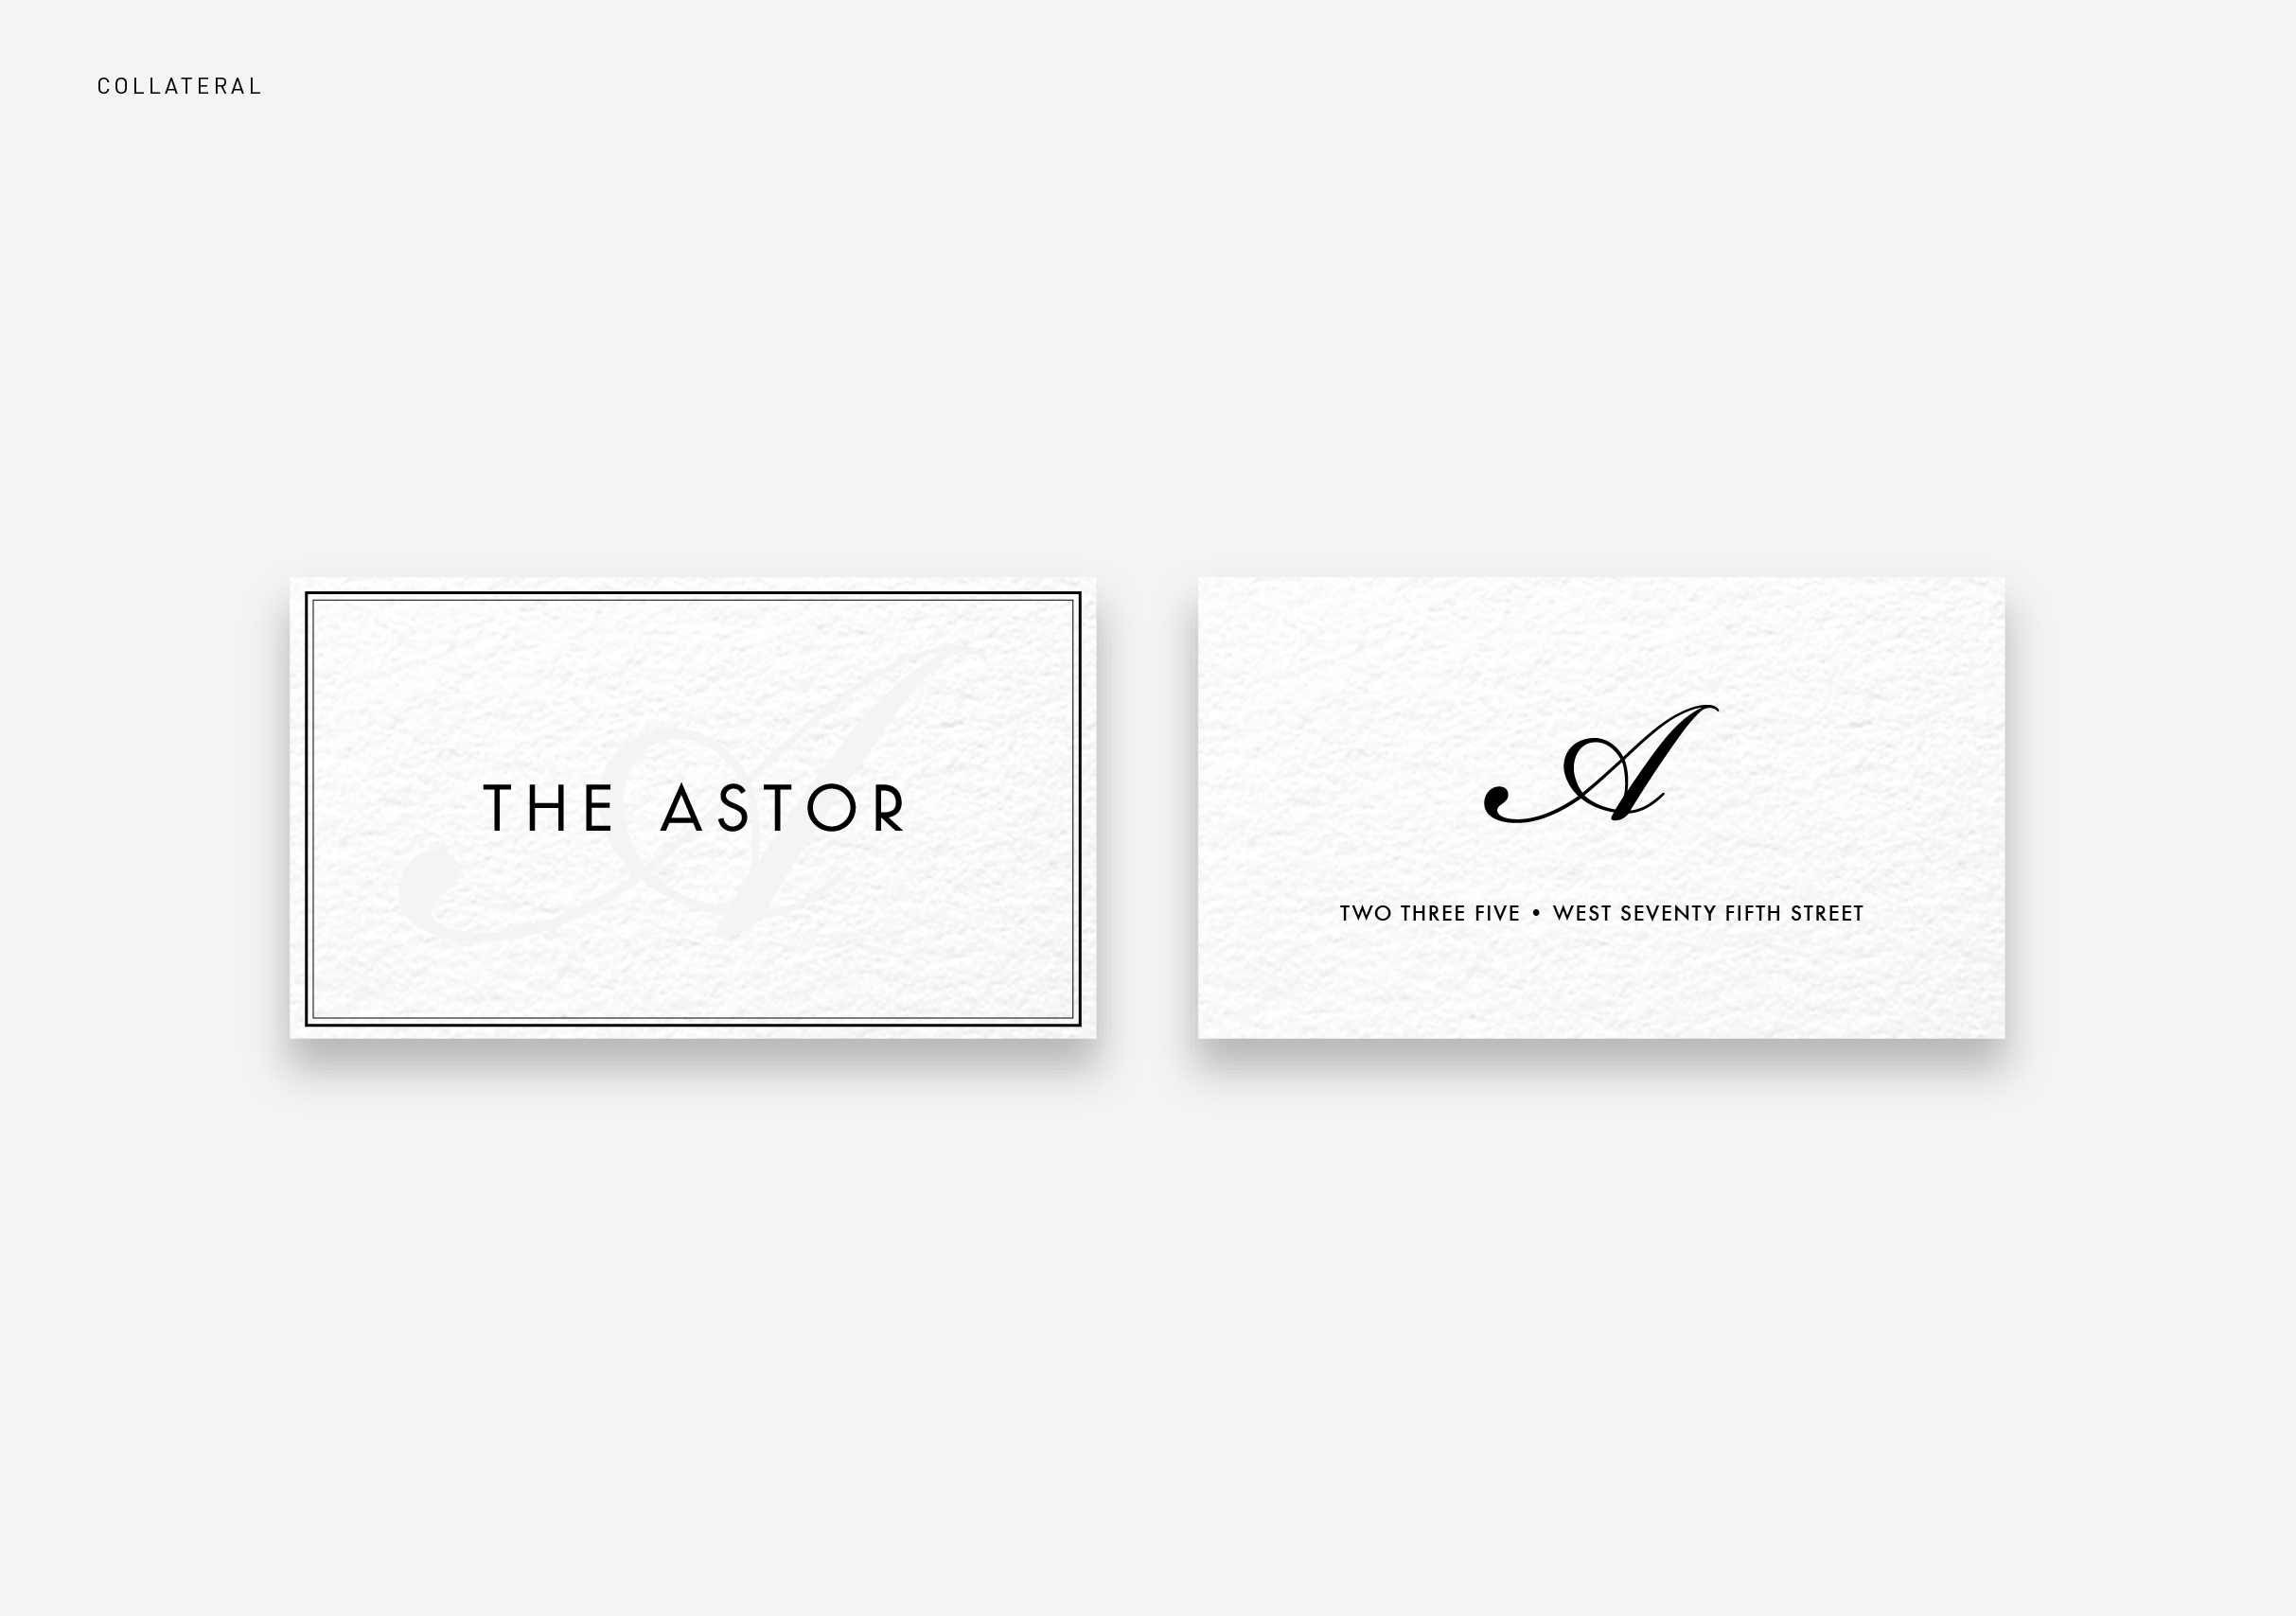 THE ASTOR-04